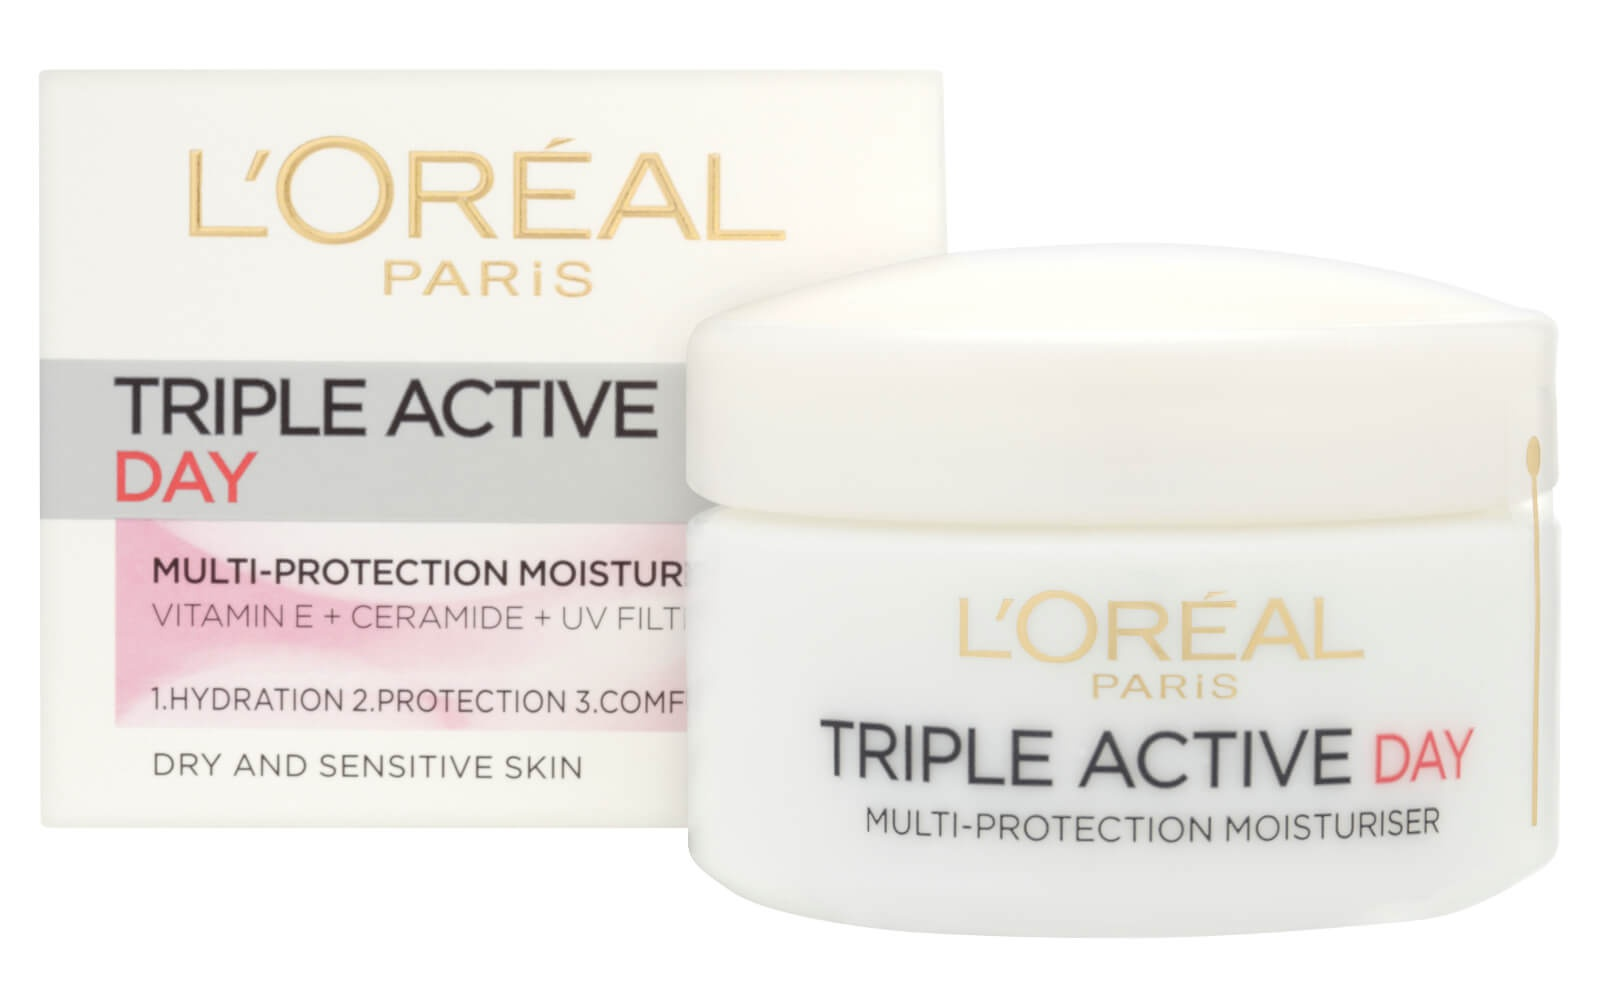 L'Oreal Paris Dermo Expertise Triple Active Day Multi-Protection Moisturiser